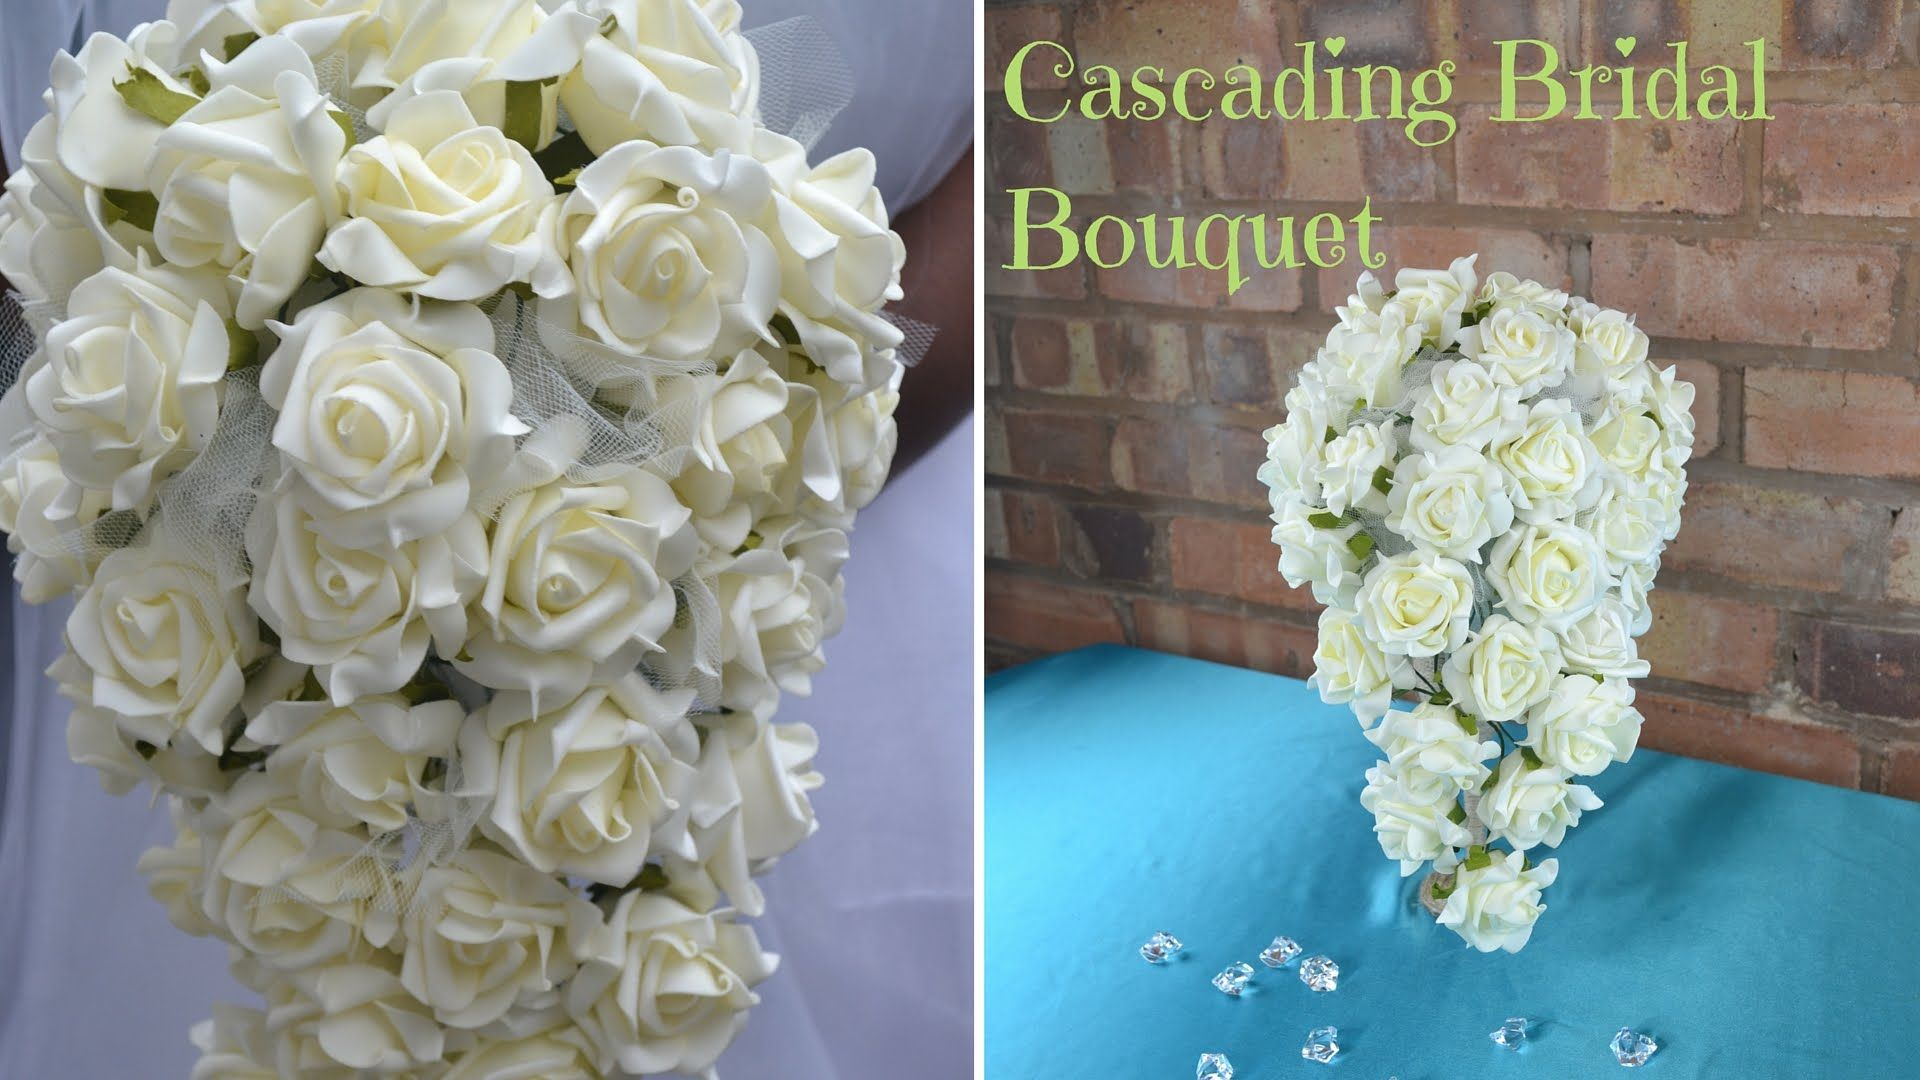 Do it yourself wedding flowers tutorial. How to create